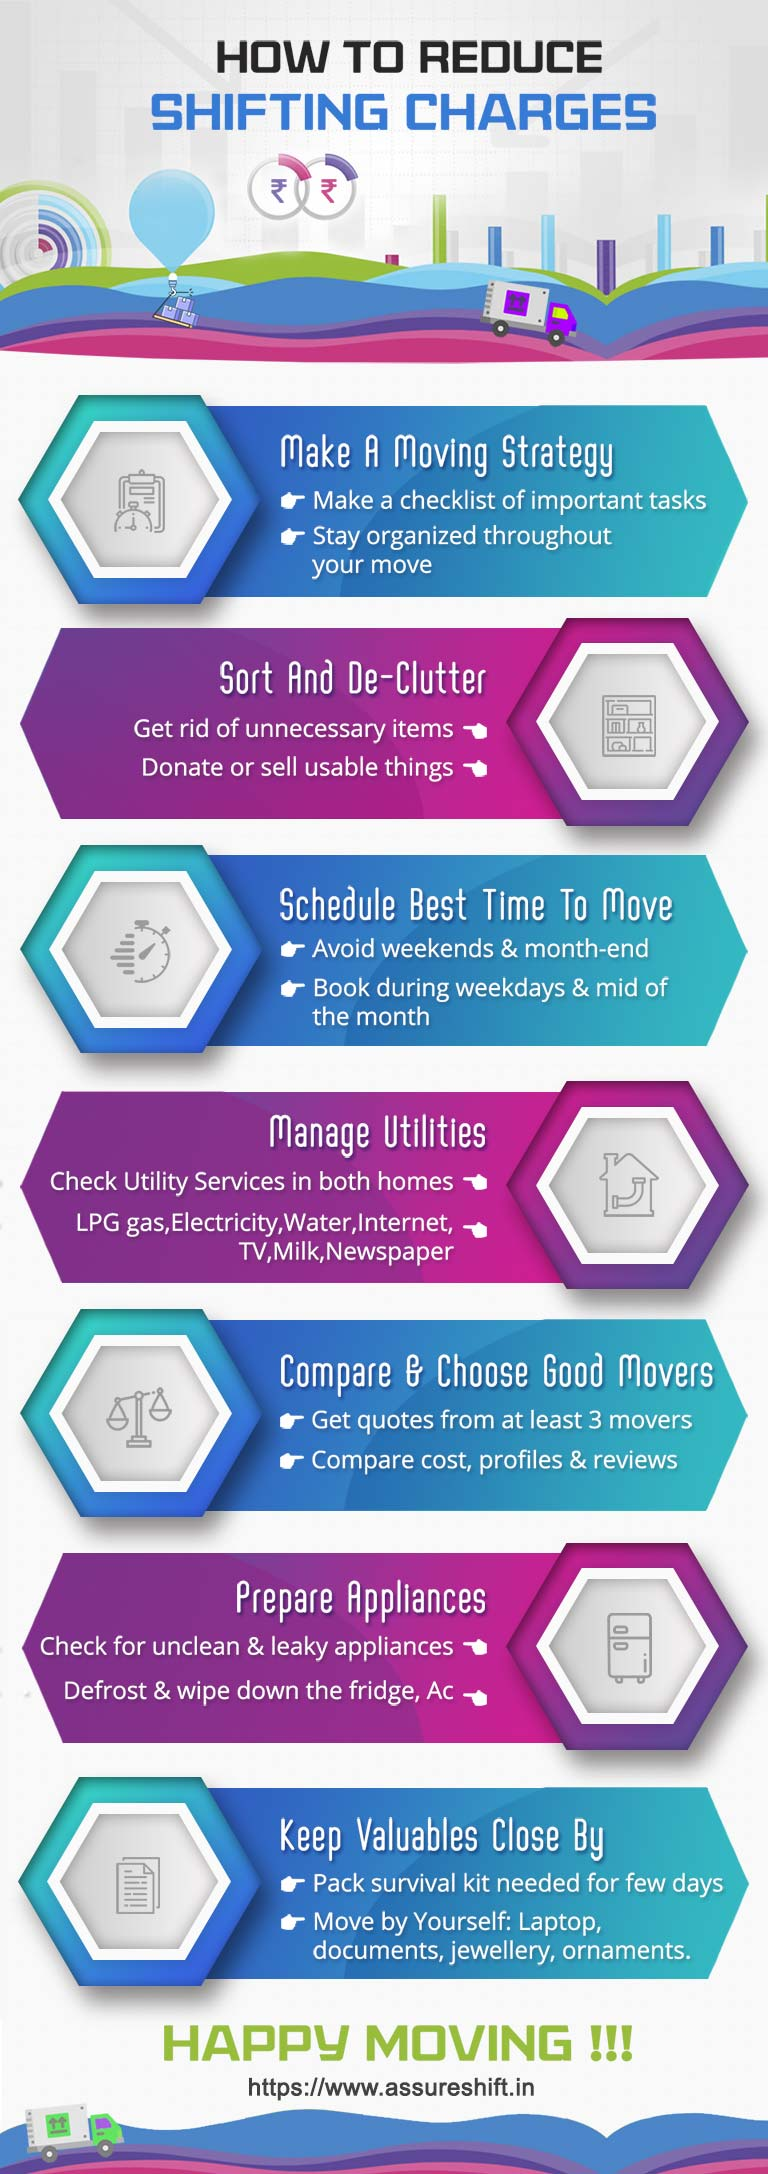 how to reduce shifting charges infography